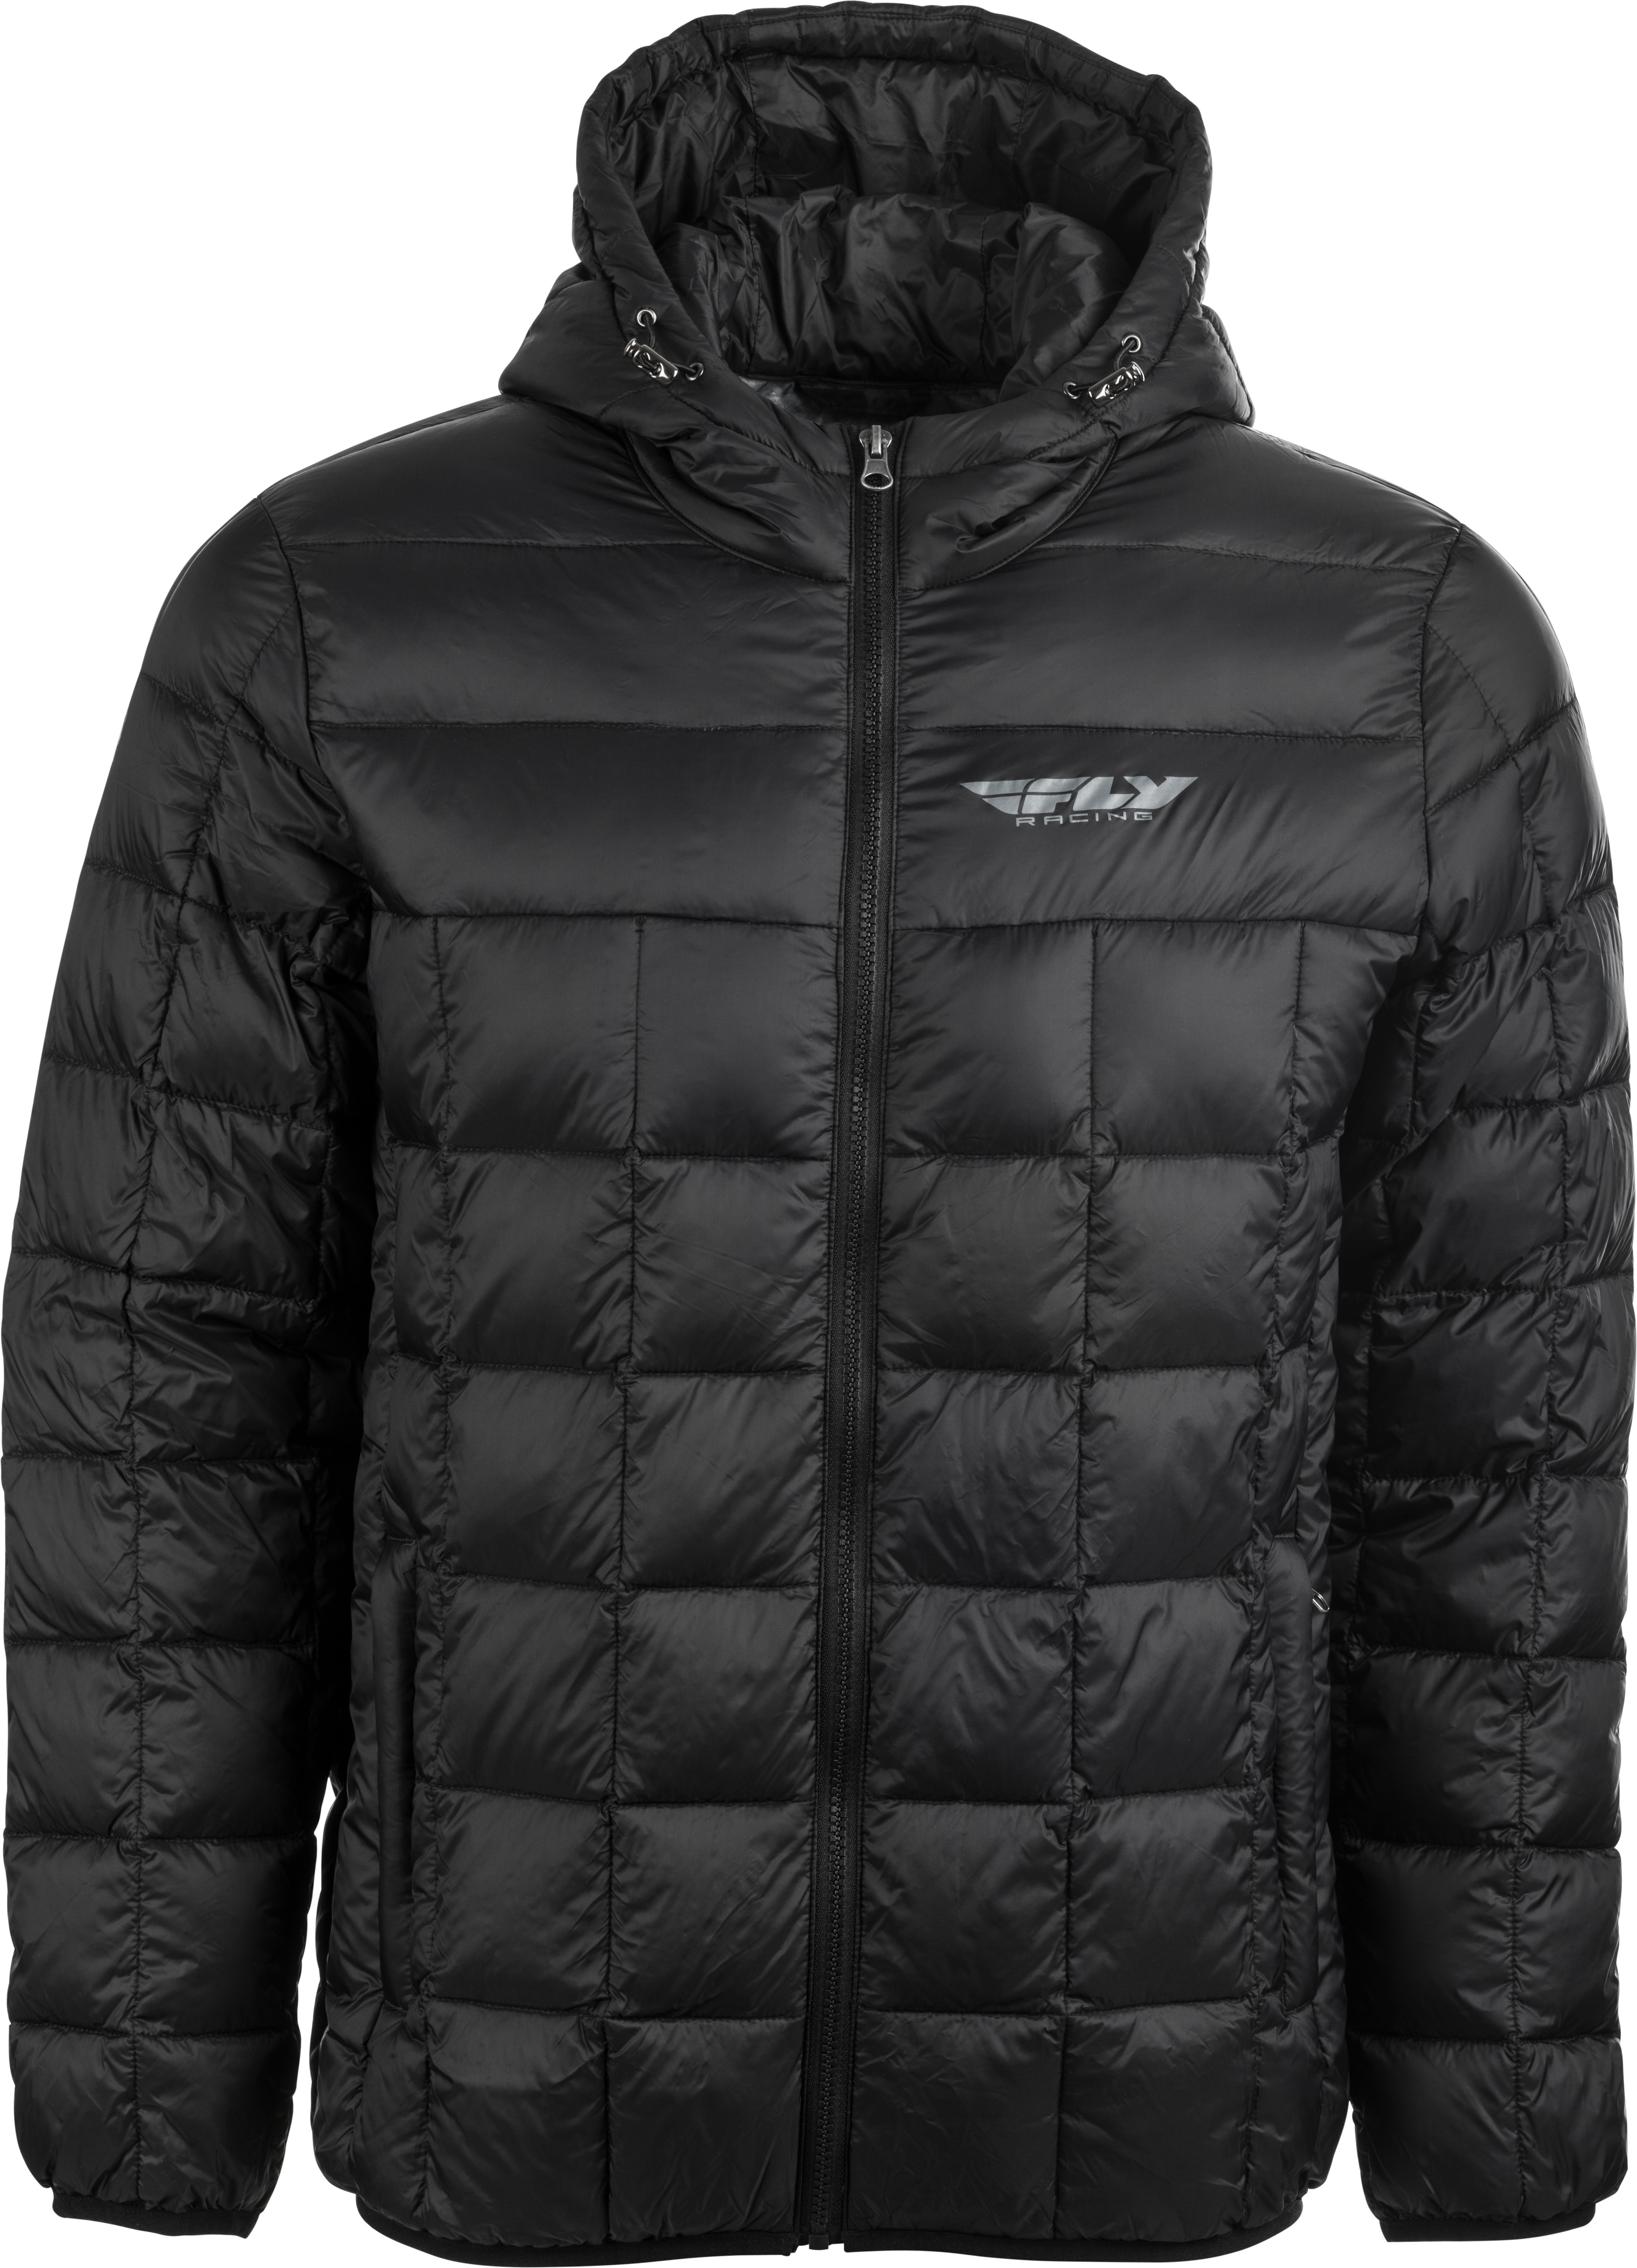 354-6180M Fly Racing Fly Spark Down Jacket Black Md